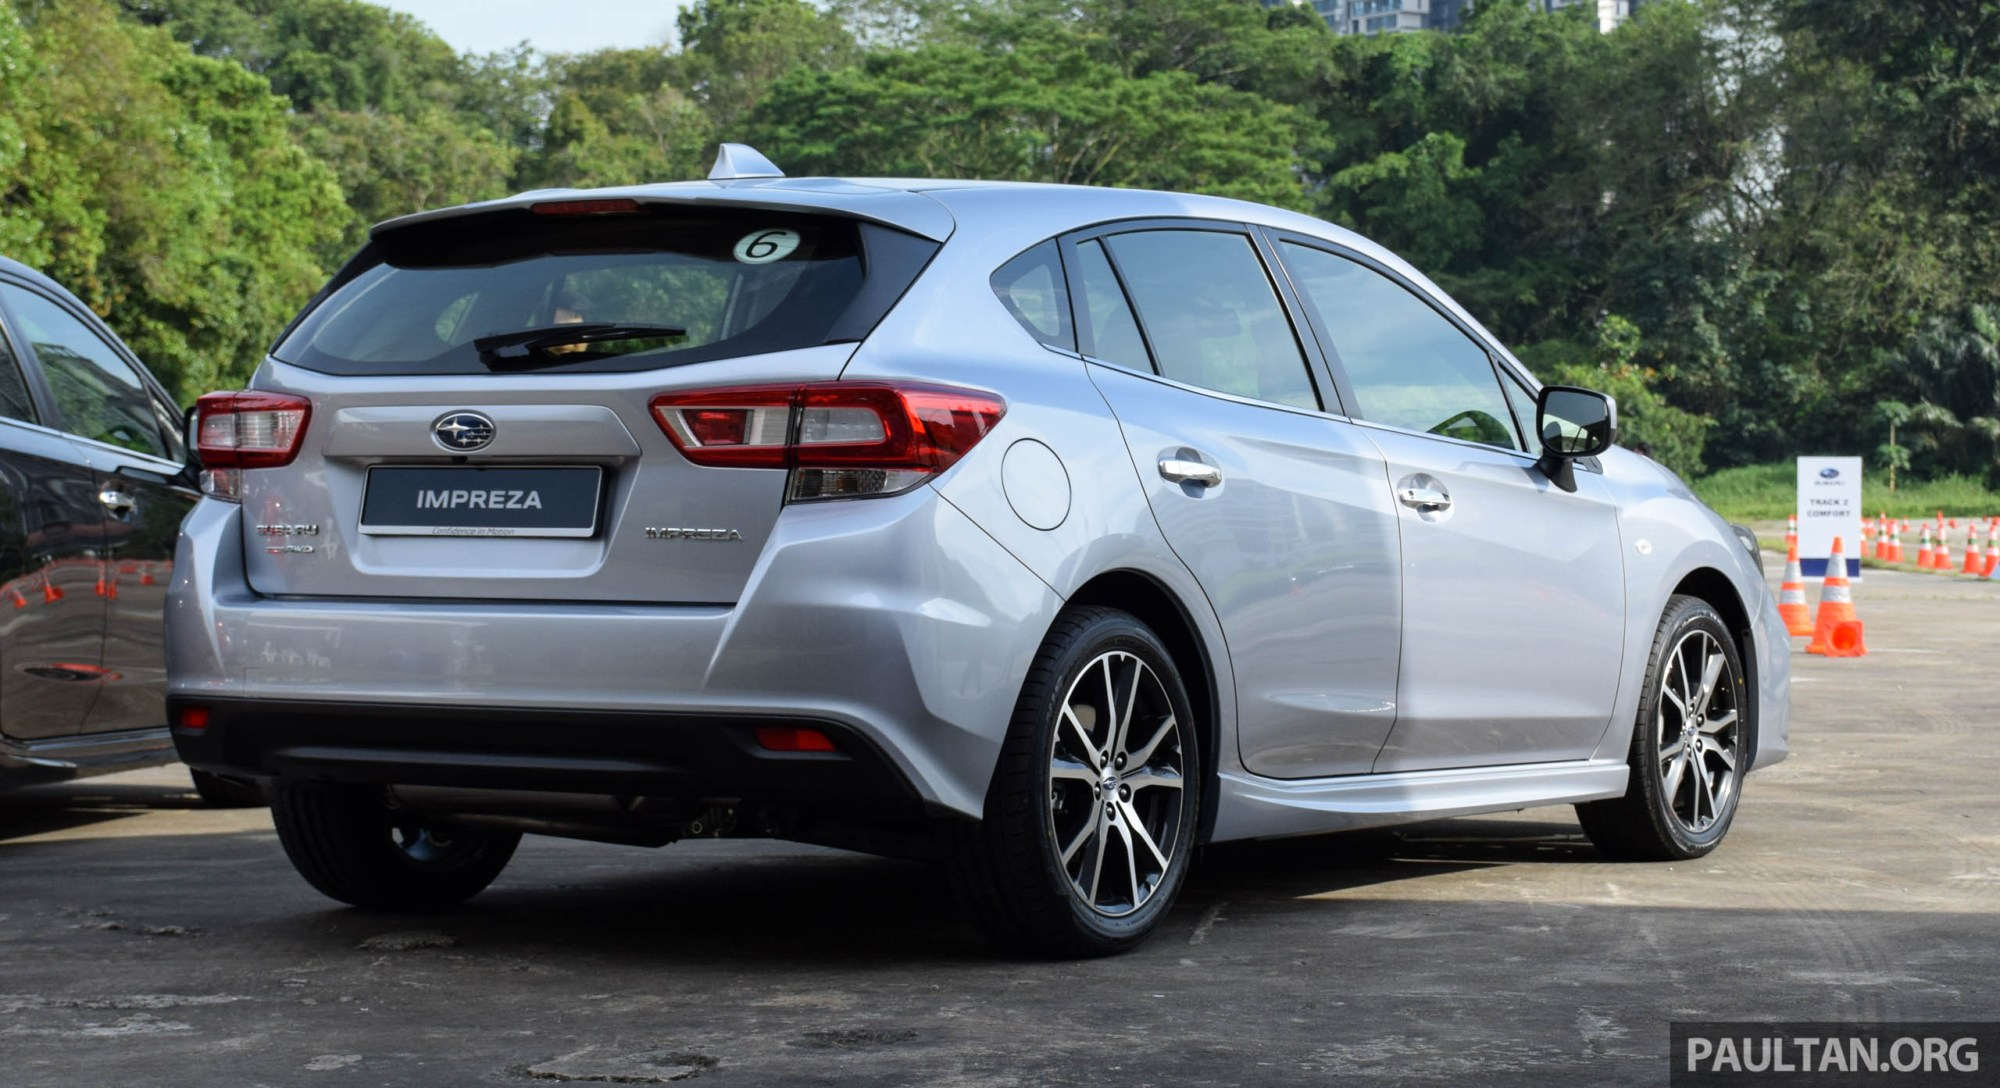 hight resolution of 2017 subaru impreza launched in singapore sedan and hatchback na 1 6l and 2 0